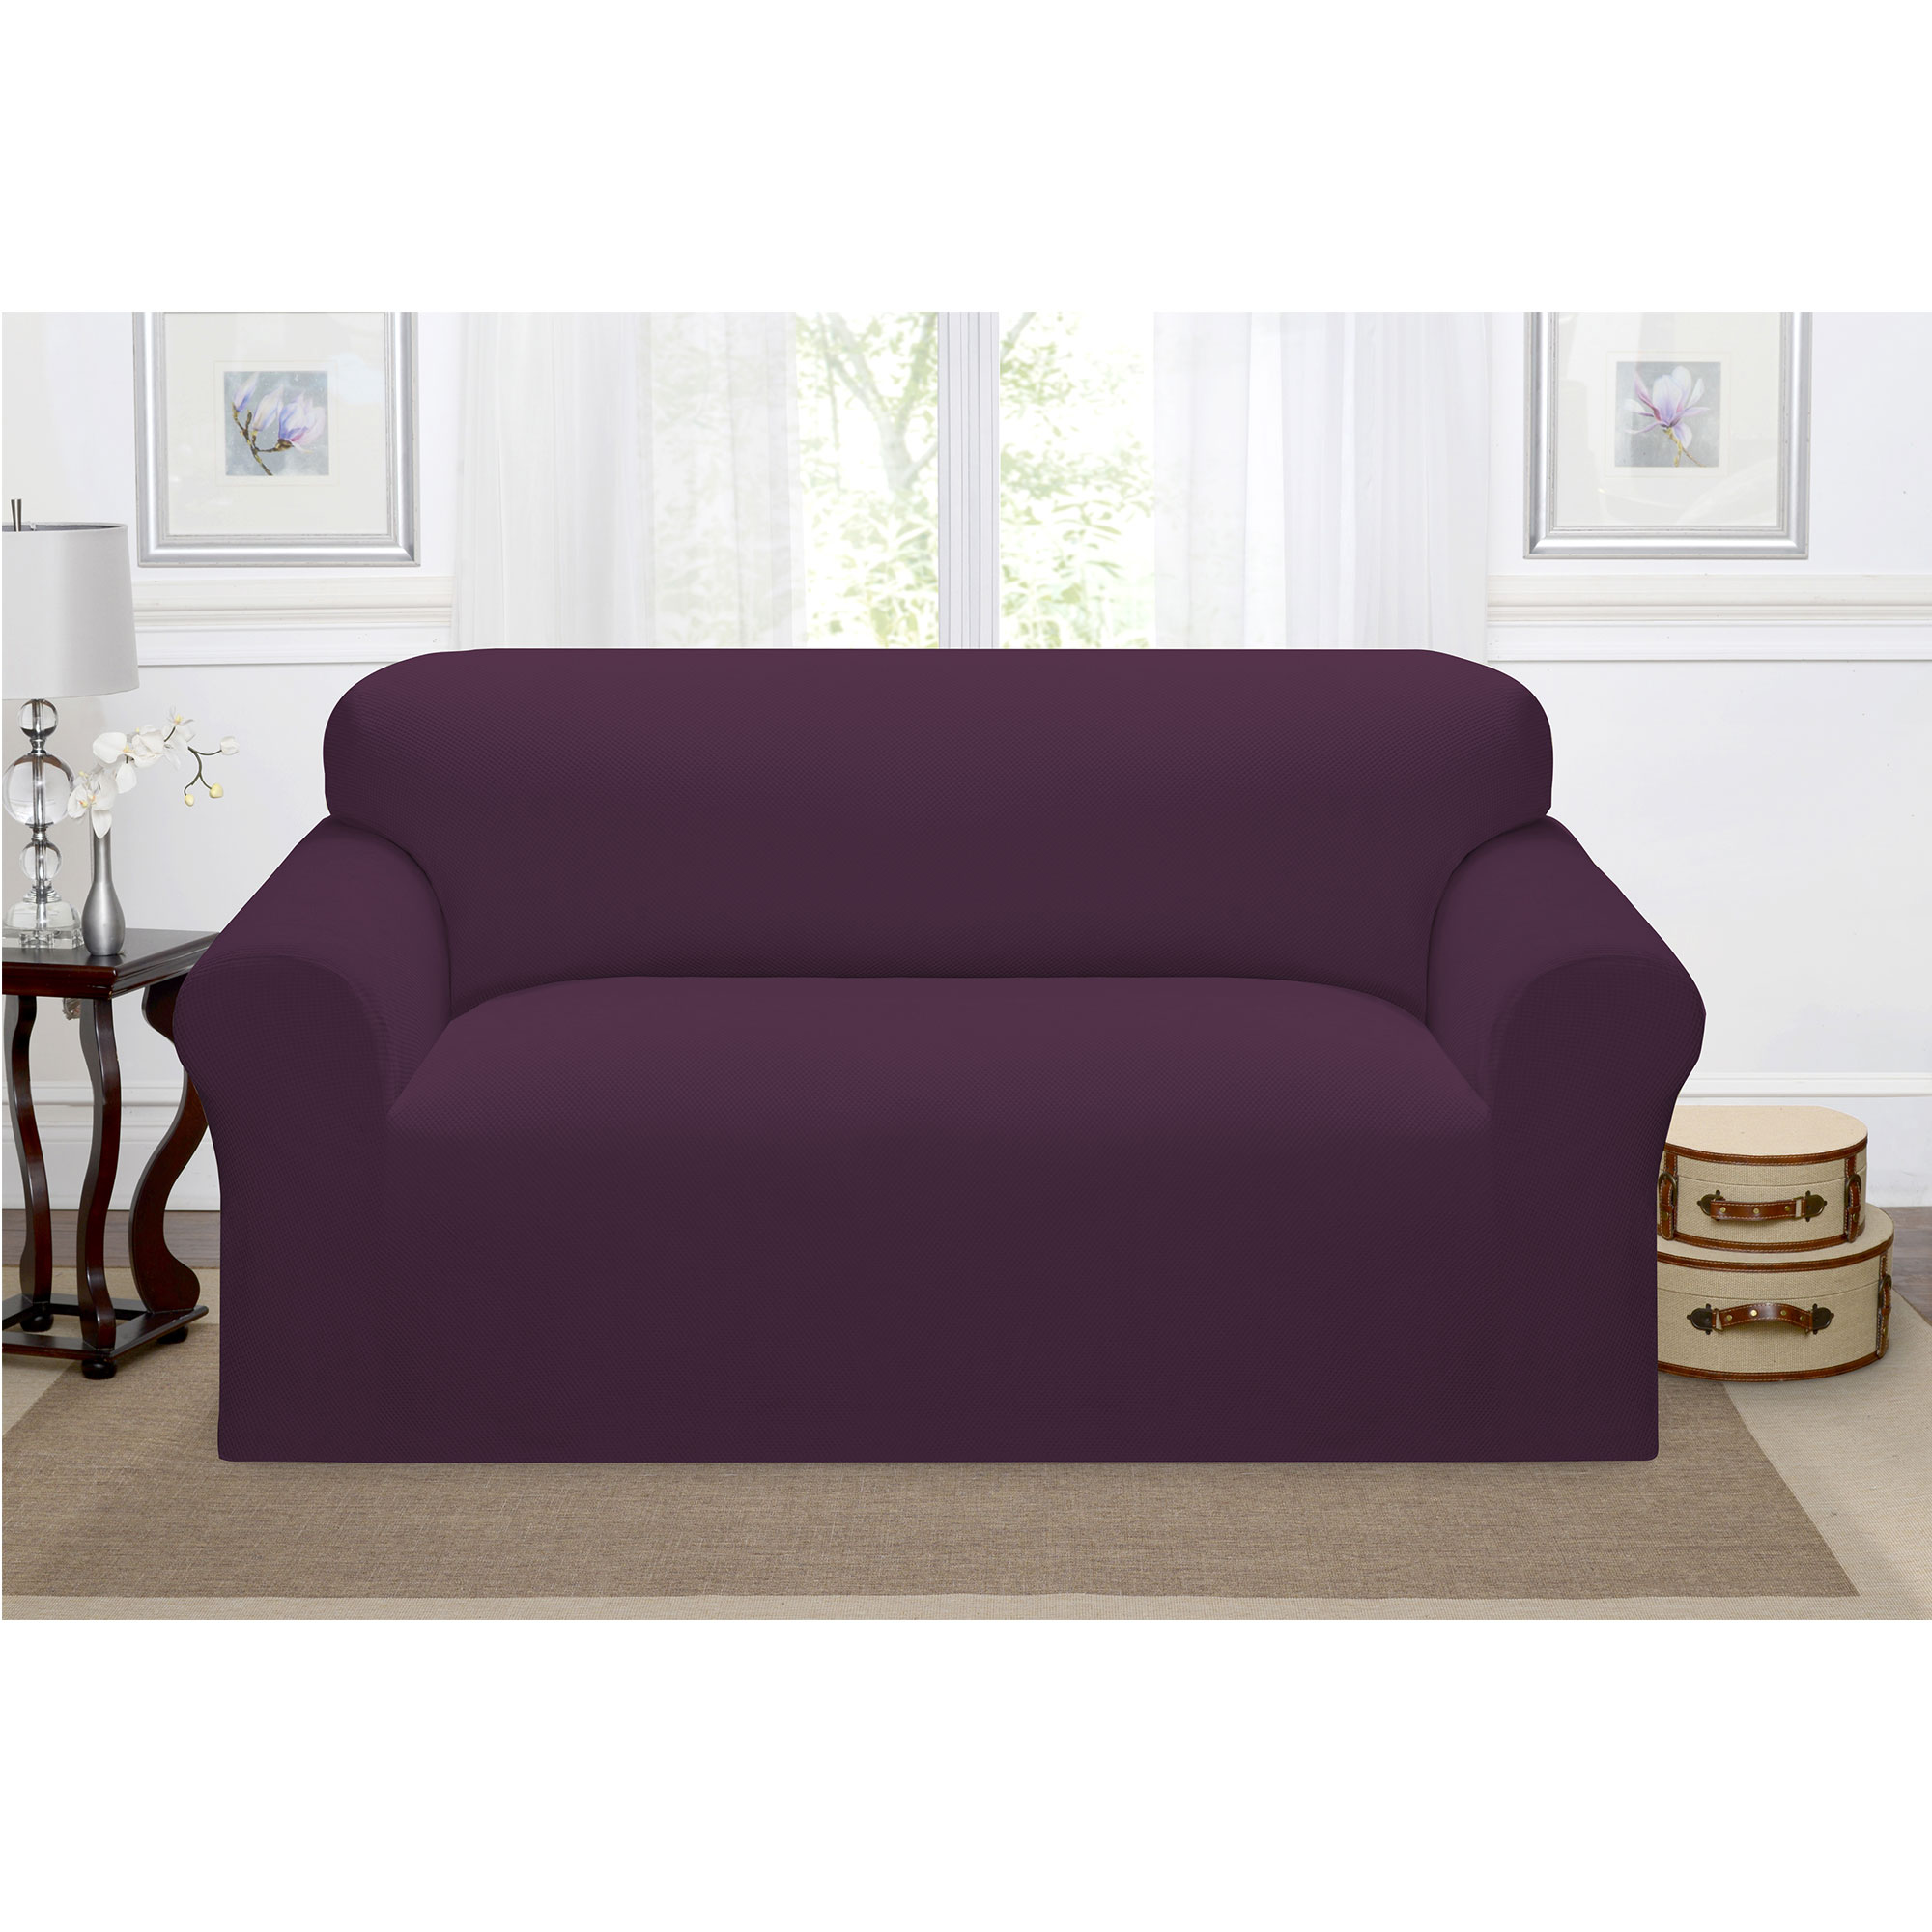 Madison Home Stretch Pique Furniture Slipcover, Soft Waffle Textured Pattern (Loveseat, Purple)